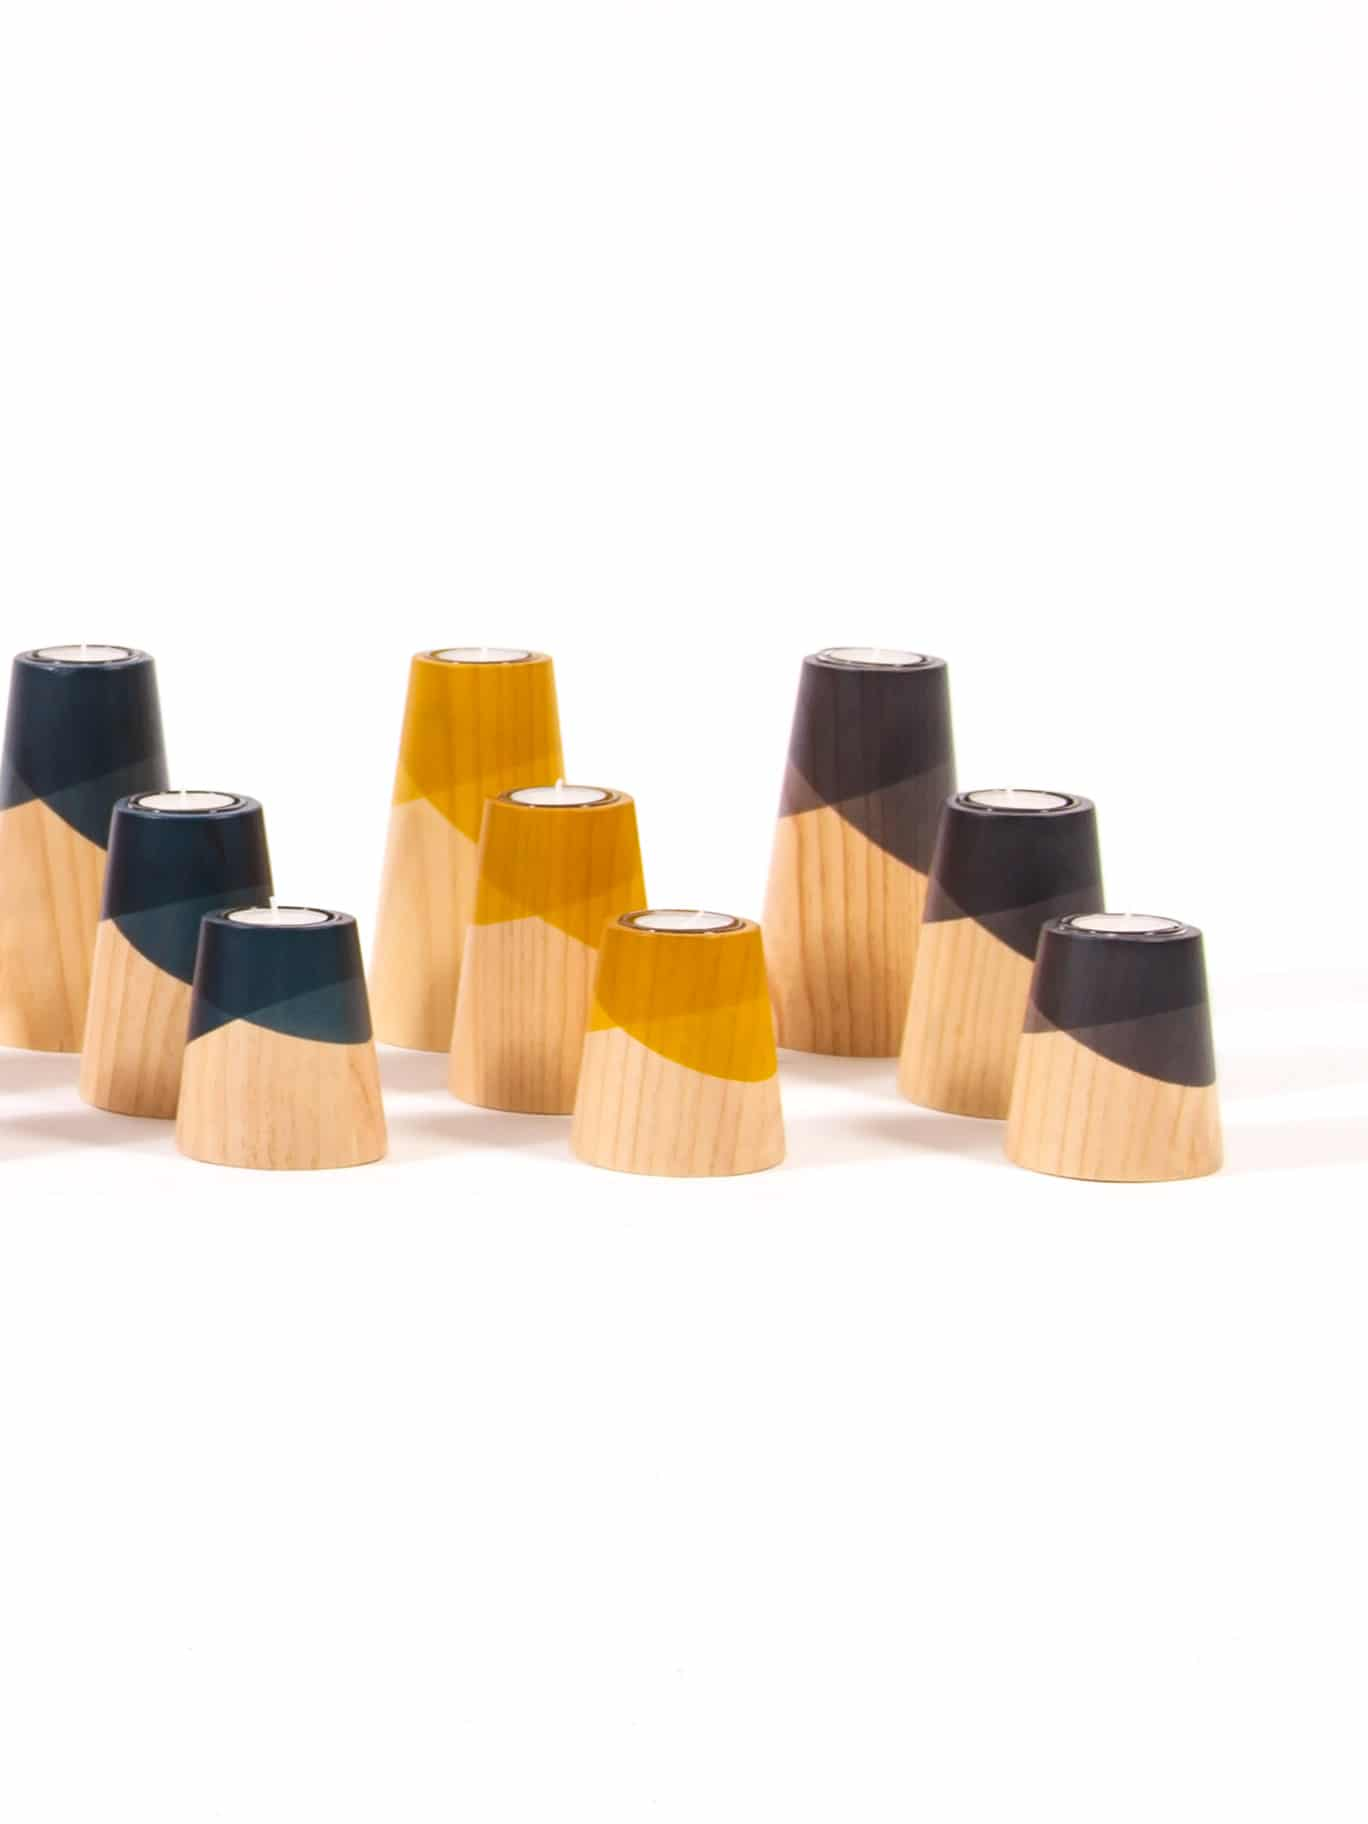 Etna mini candle holder set wooden